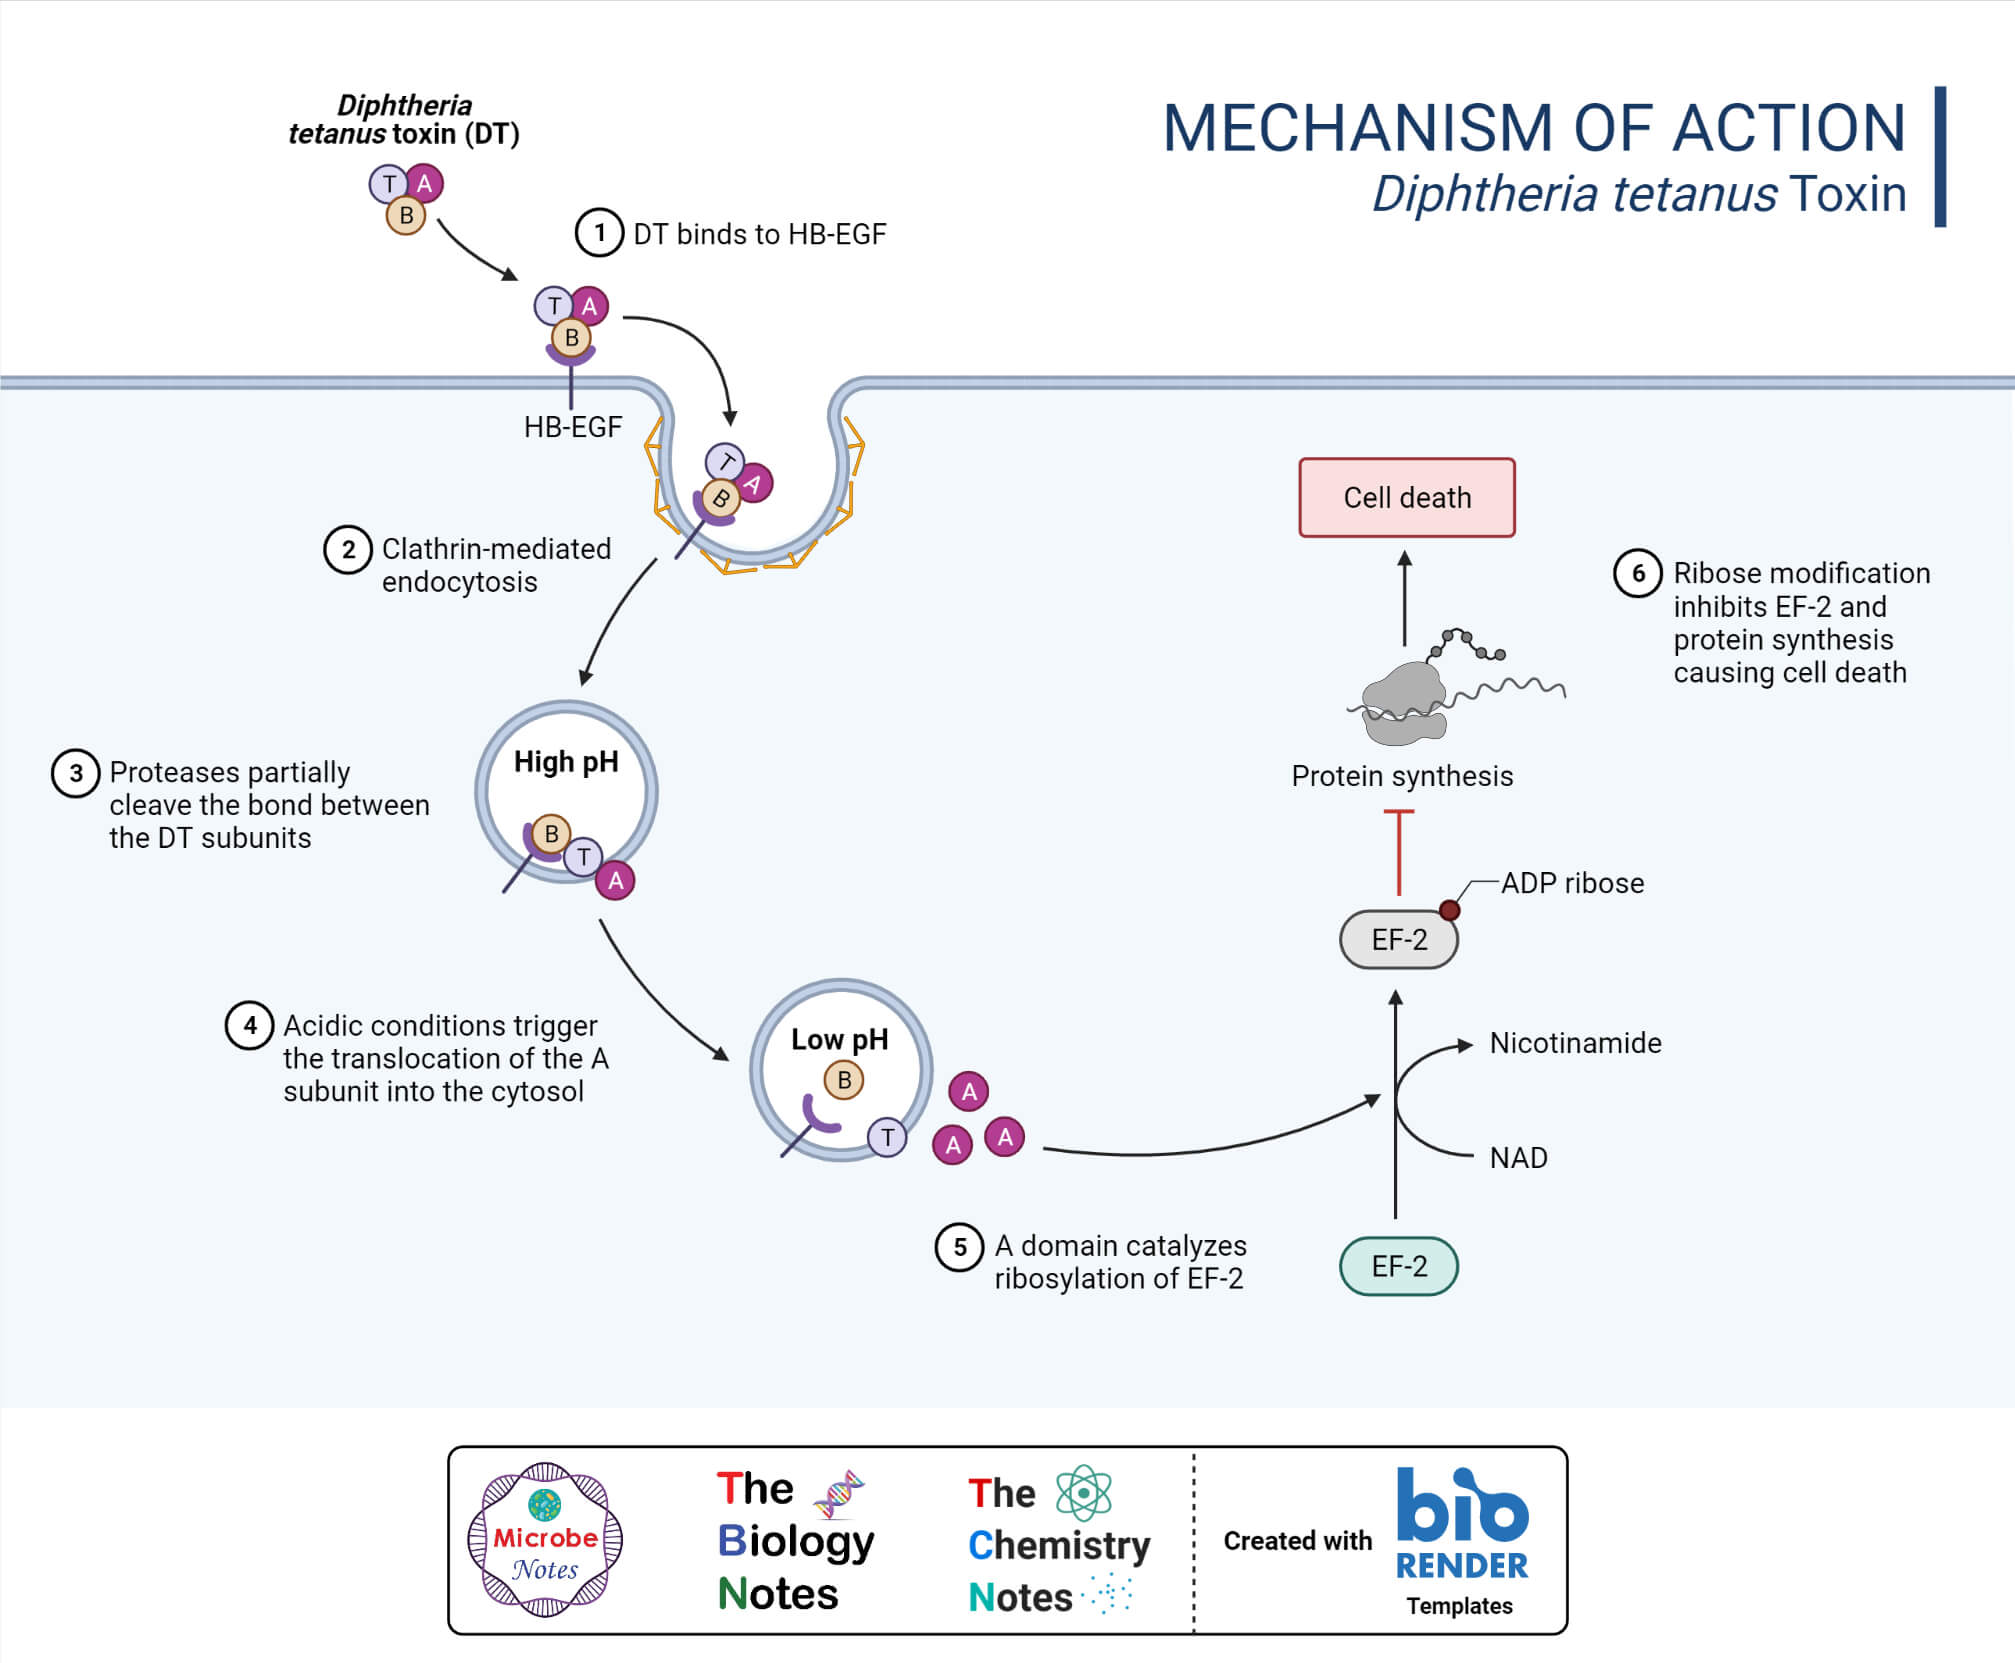 Inhibition of Protein Synthesis by Diphtheria Toxin